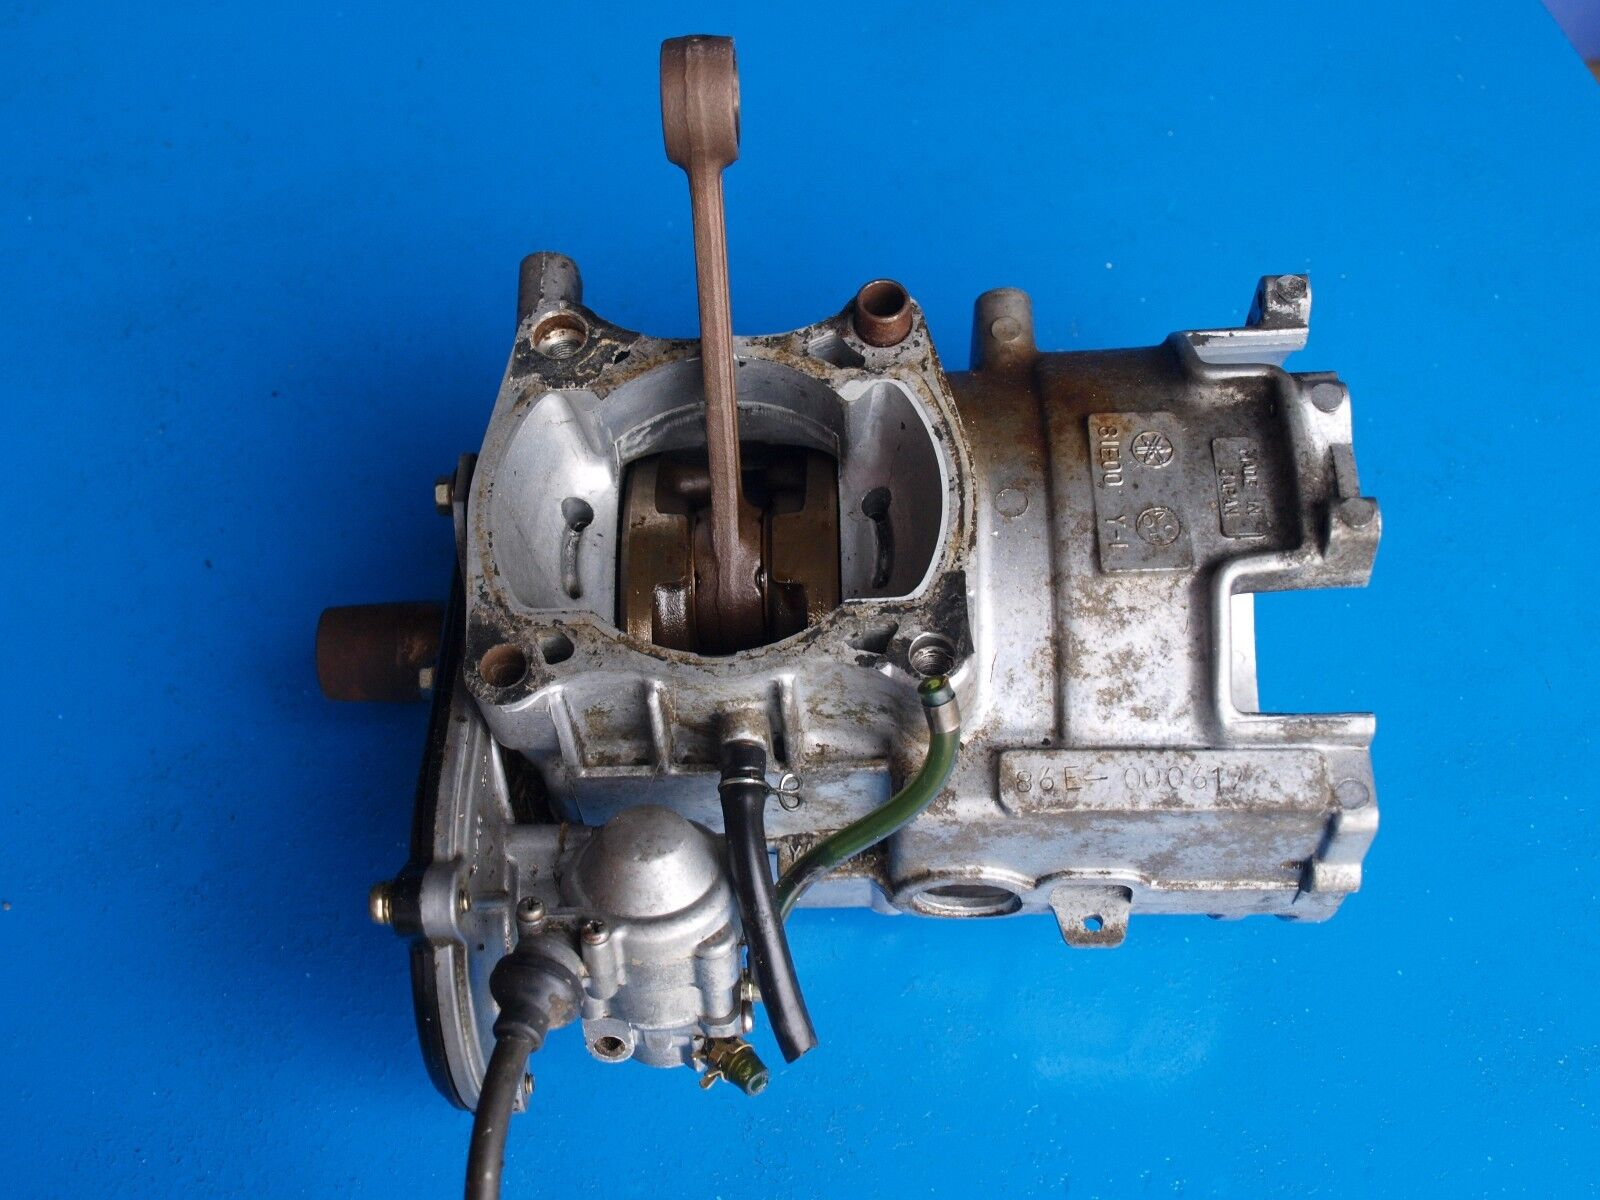 Vintage Yamaha Inviter 81E Snowmobile Crankcase Assembly with Oil Pump & Cable